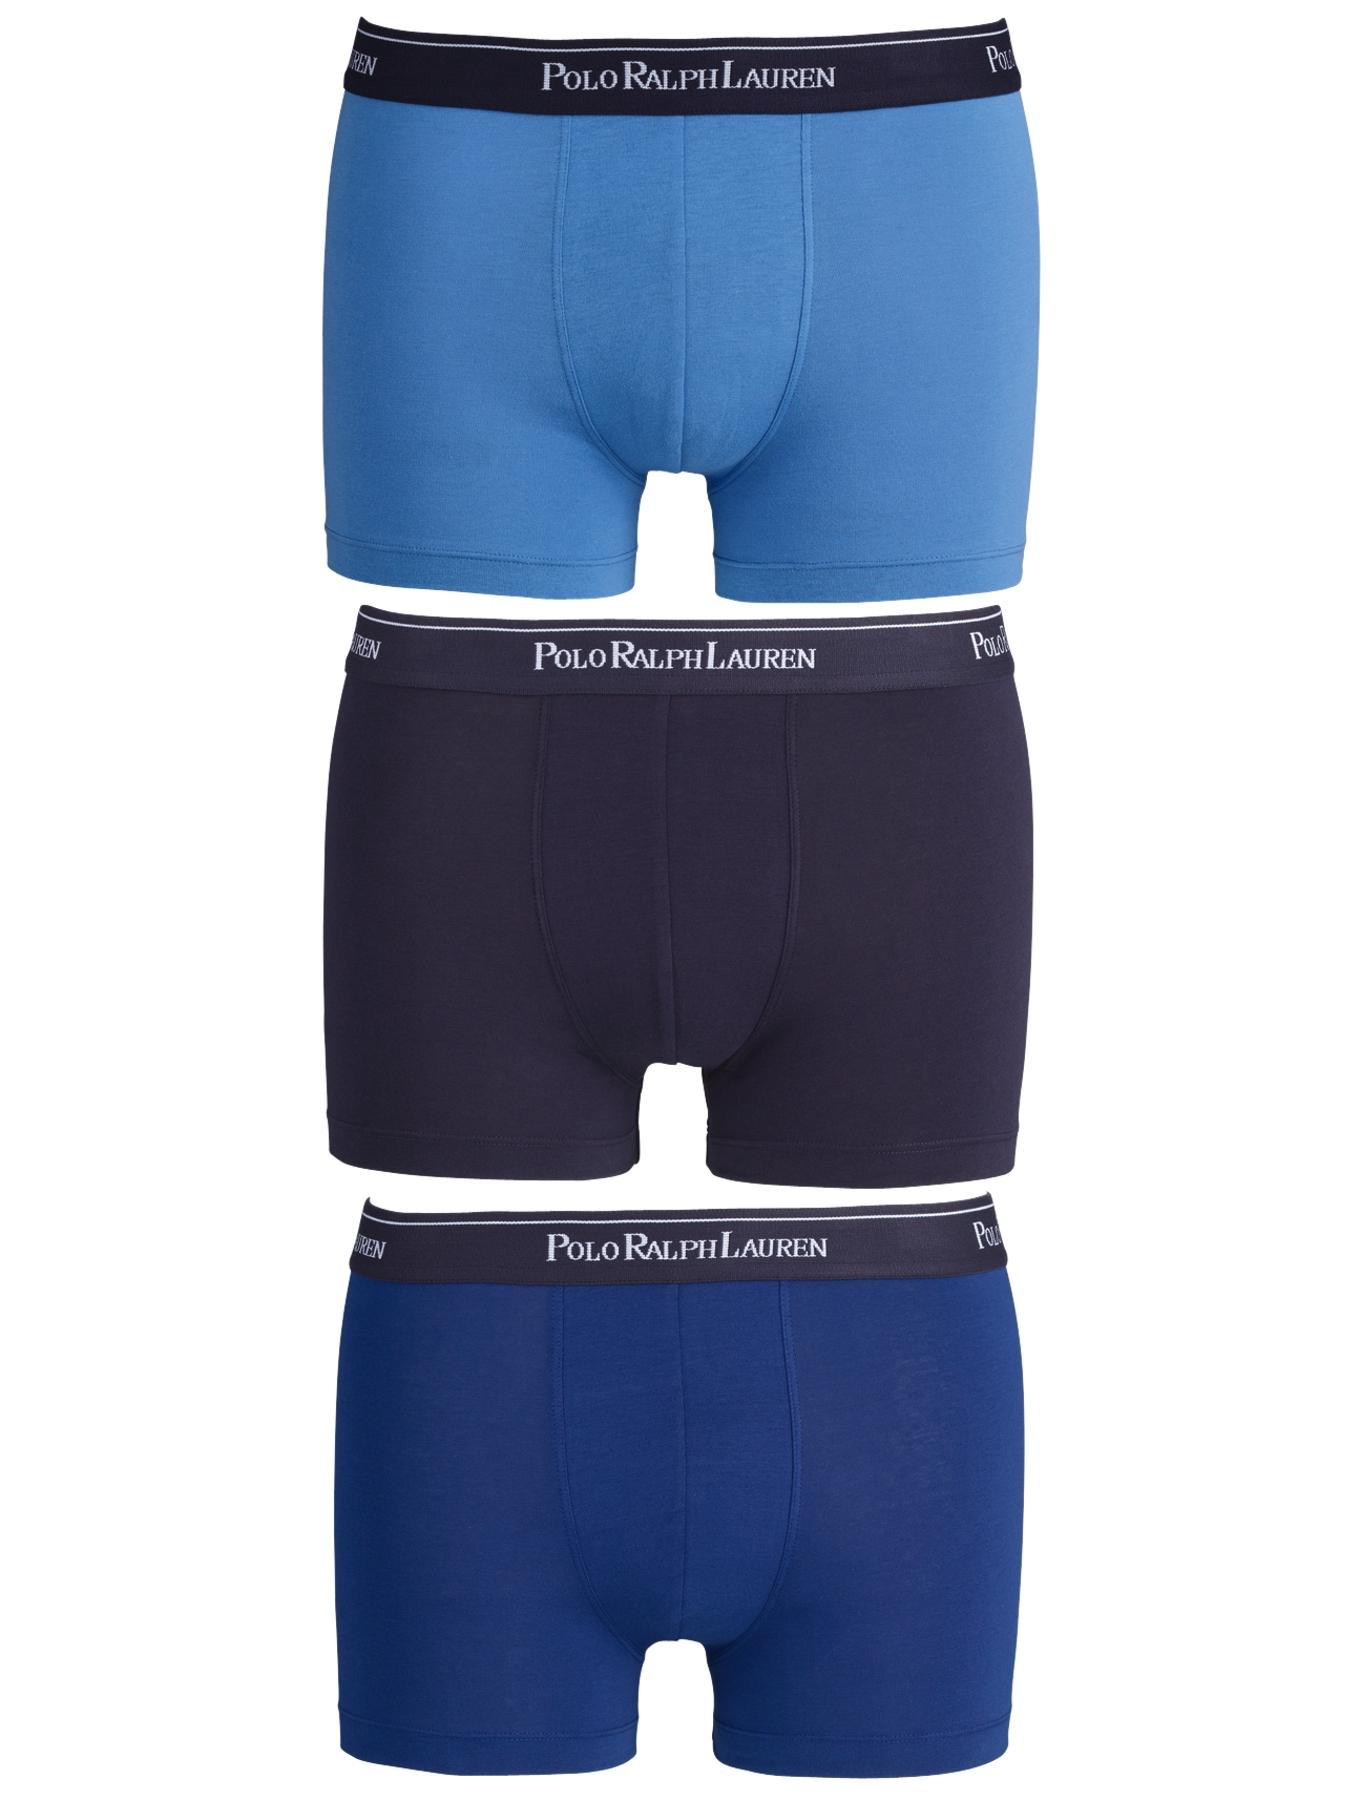 Polo Ralph Lauren Core Trunks (3 Pack)